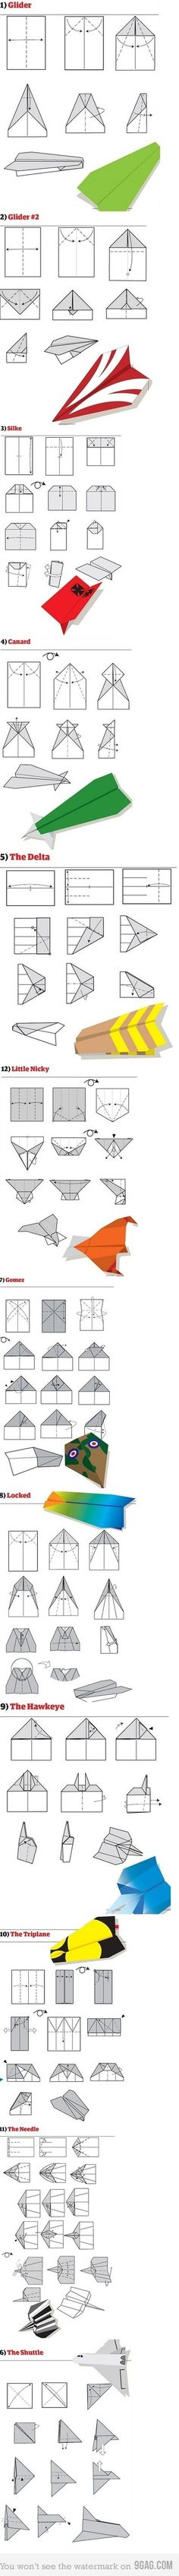 Paper airplanes, I'm sure I'll have to know how to fold some to be able to teach my boys